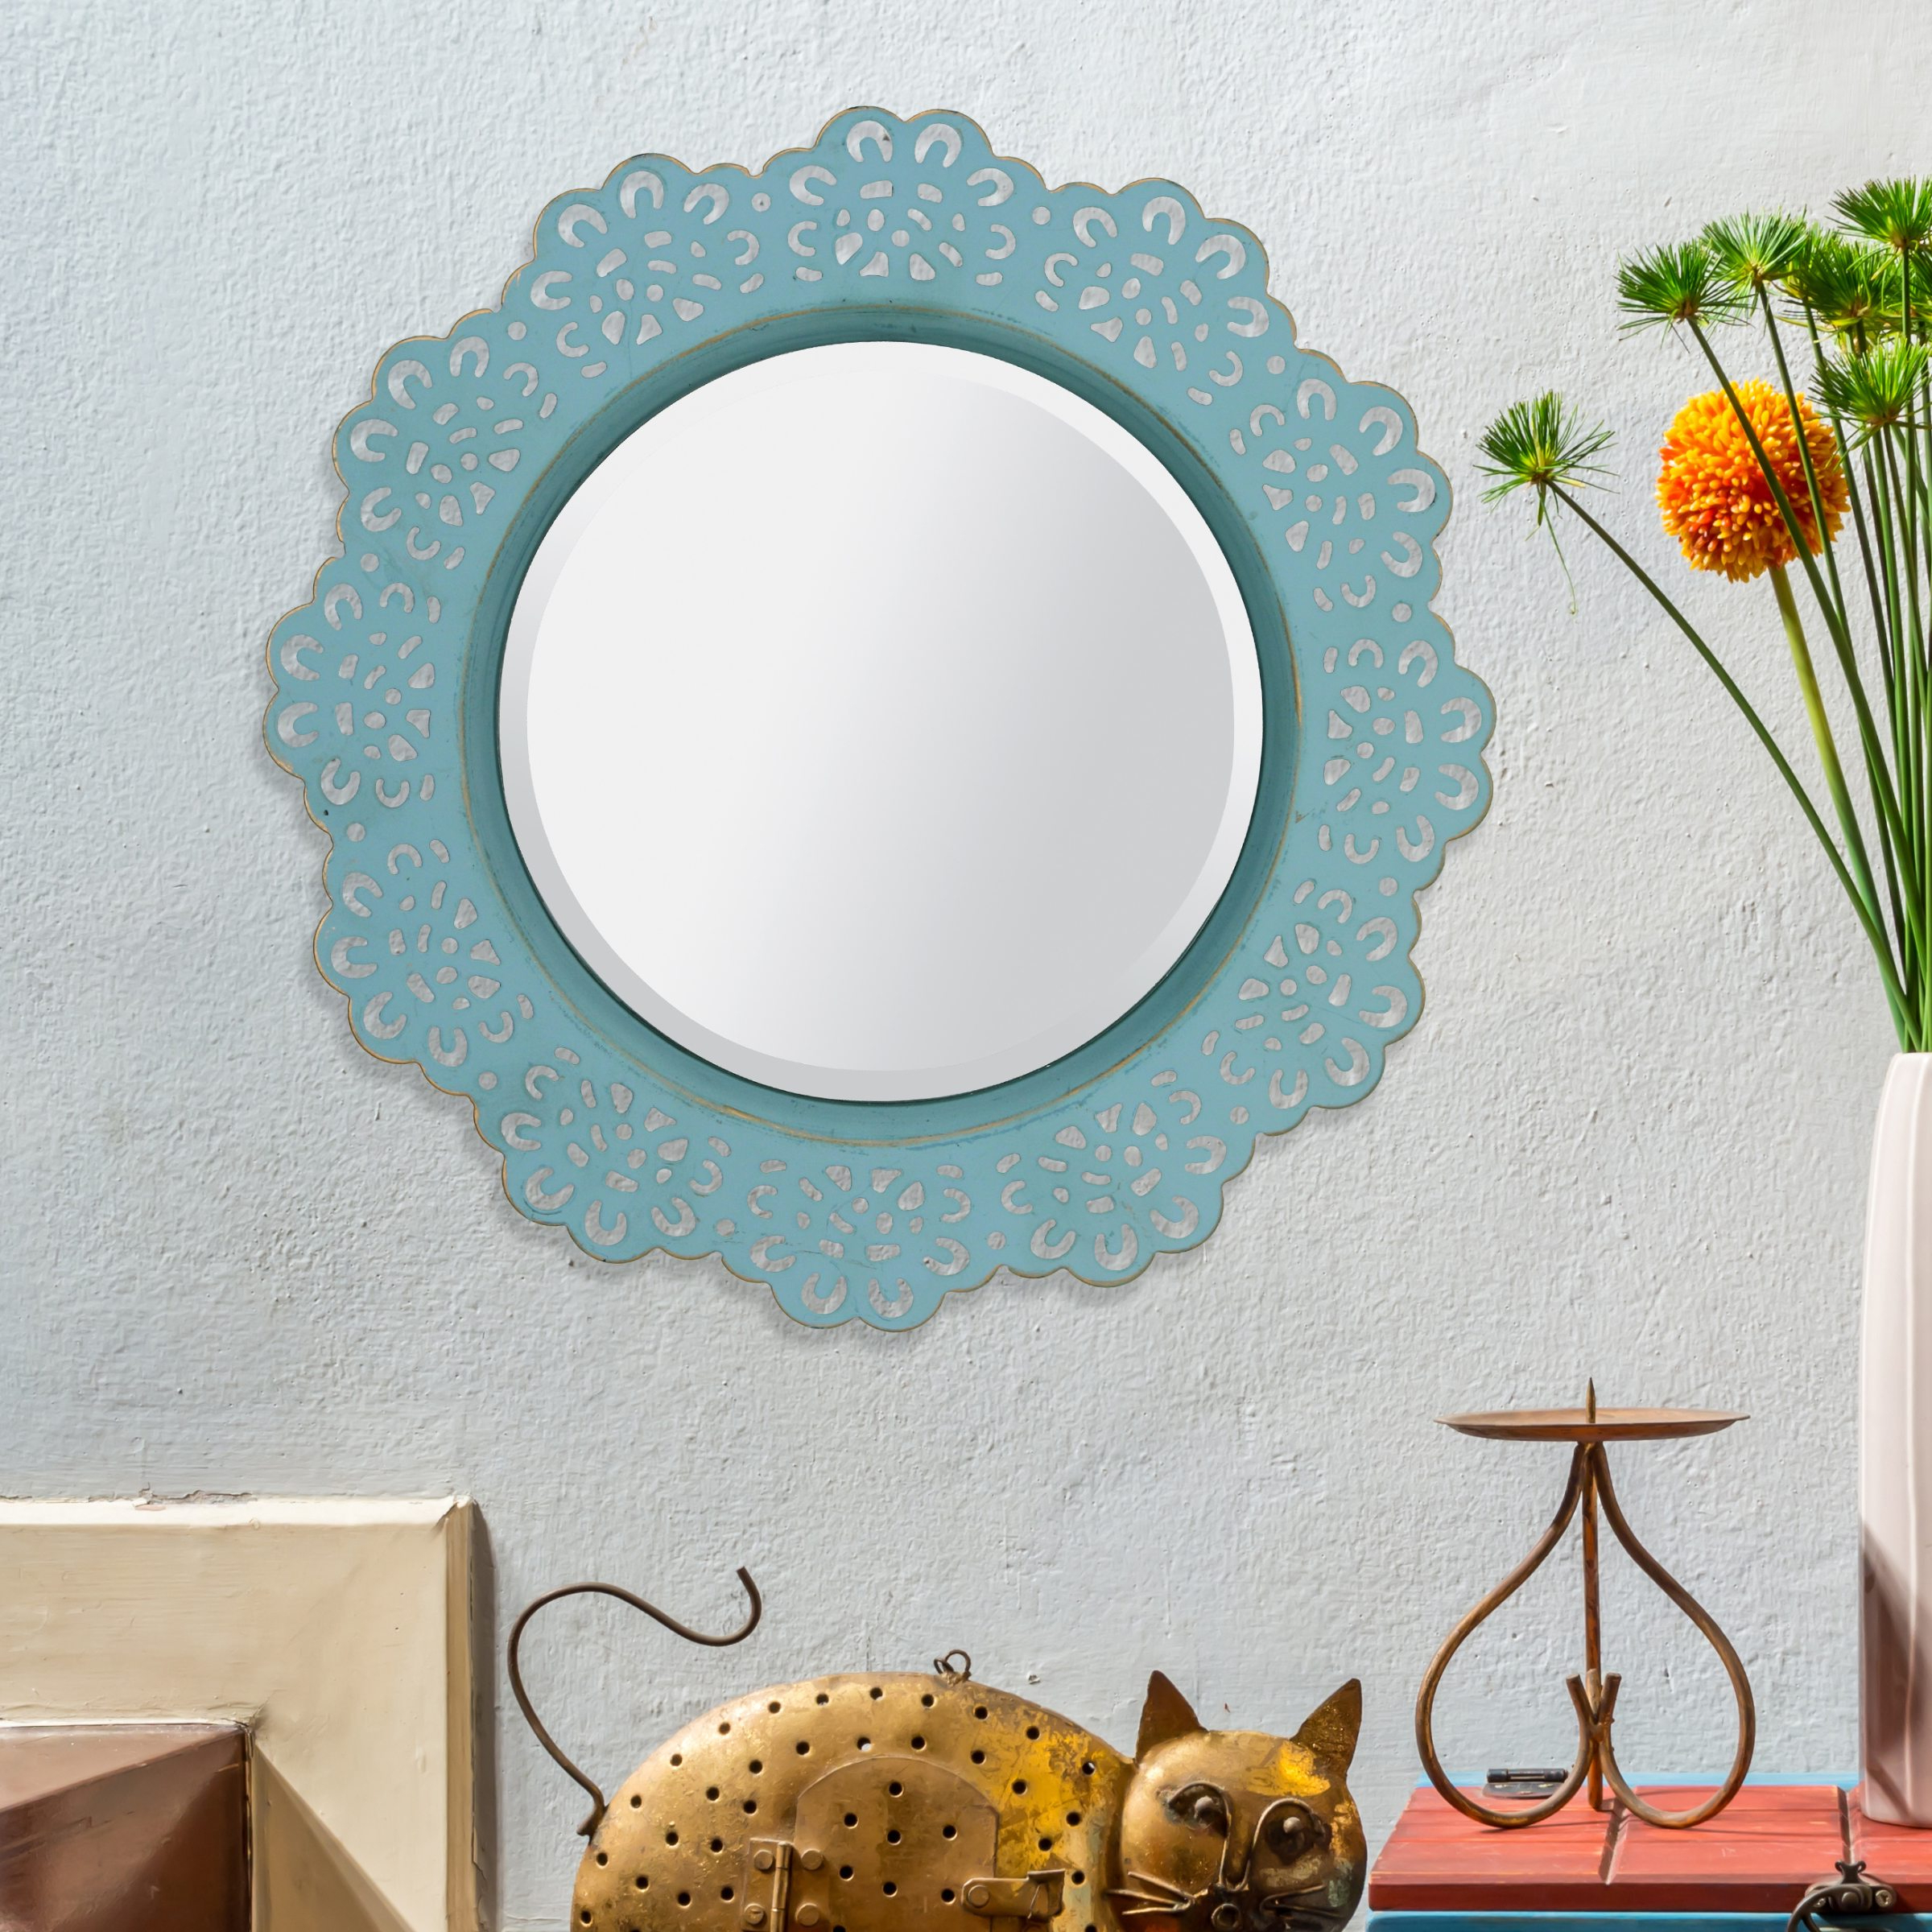 Turquoise Metal Lace Wall Mirror – Throughout Most Up To Date Turquoise Wall Mirrors (View 10 of 20)